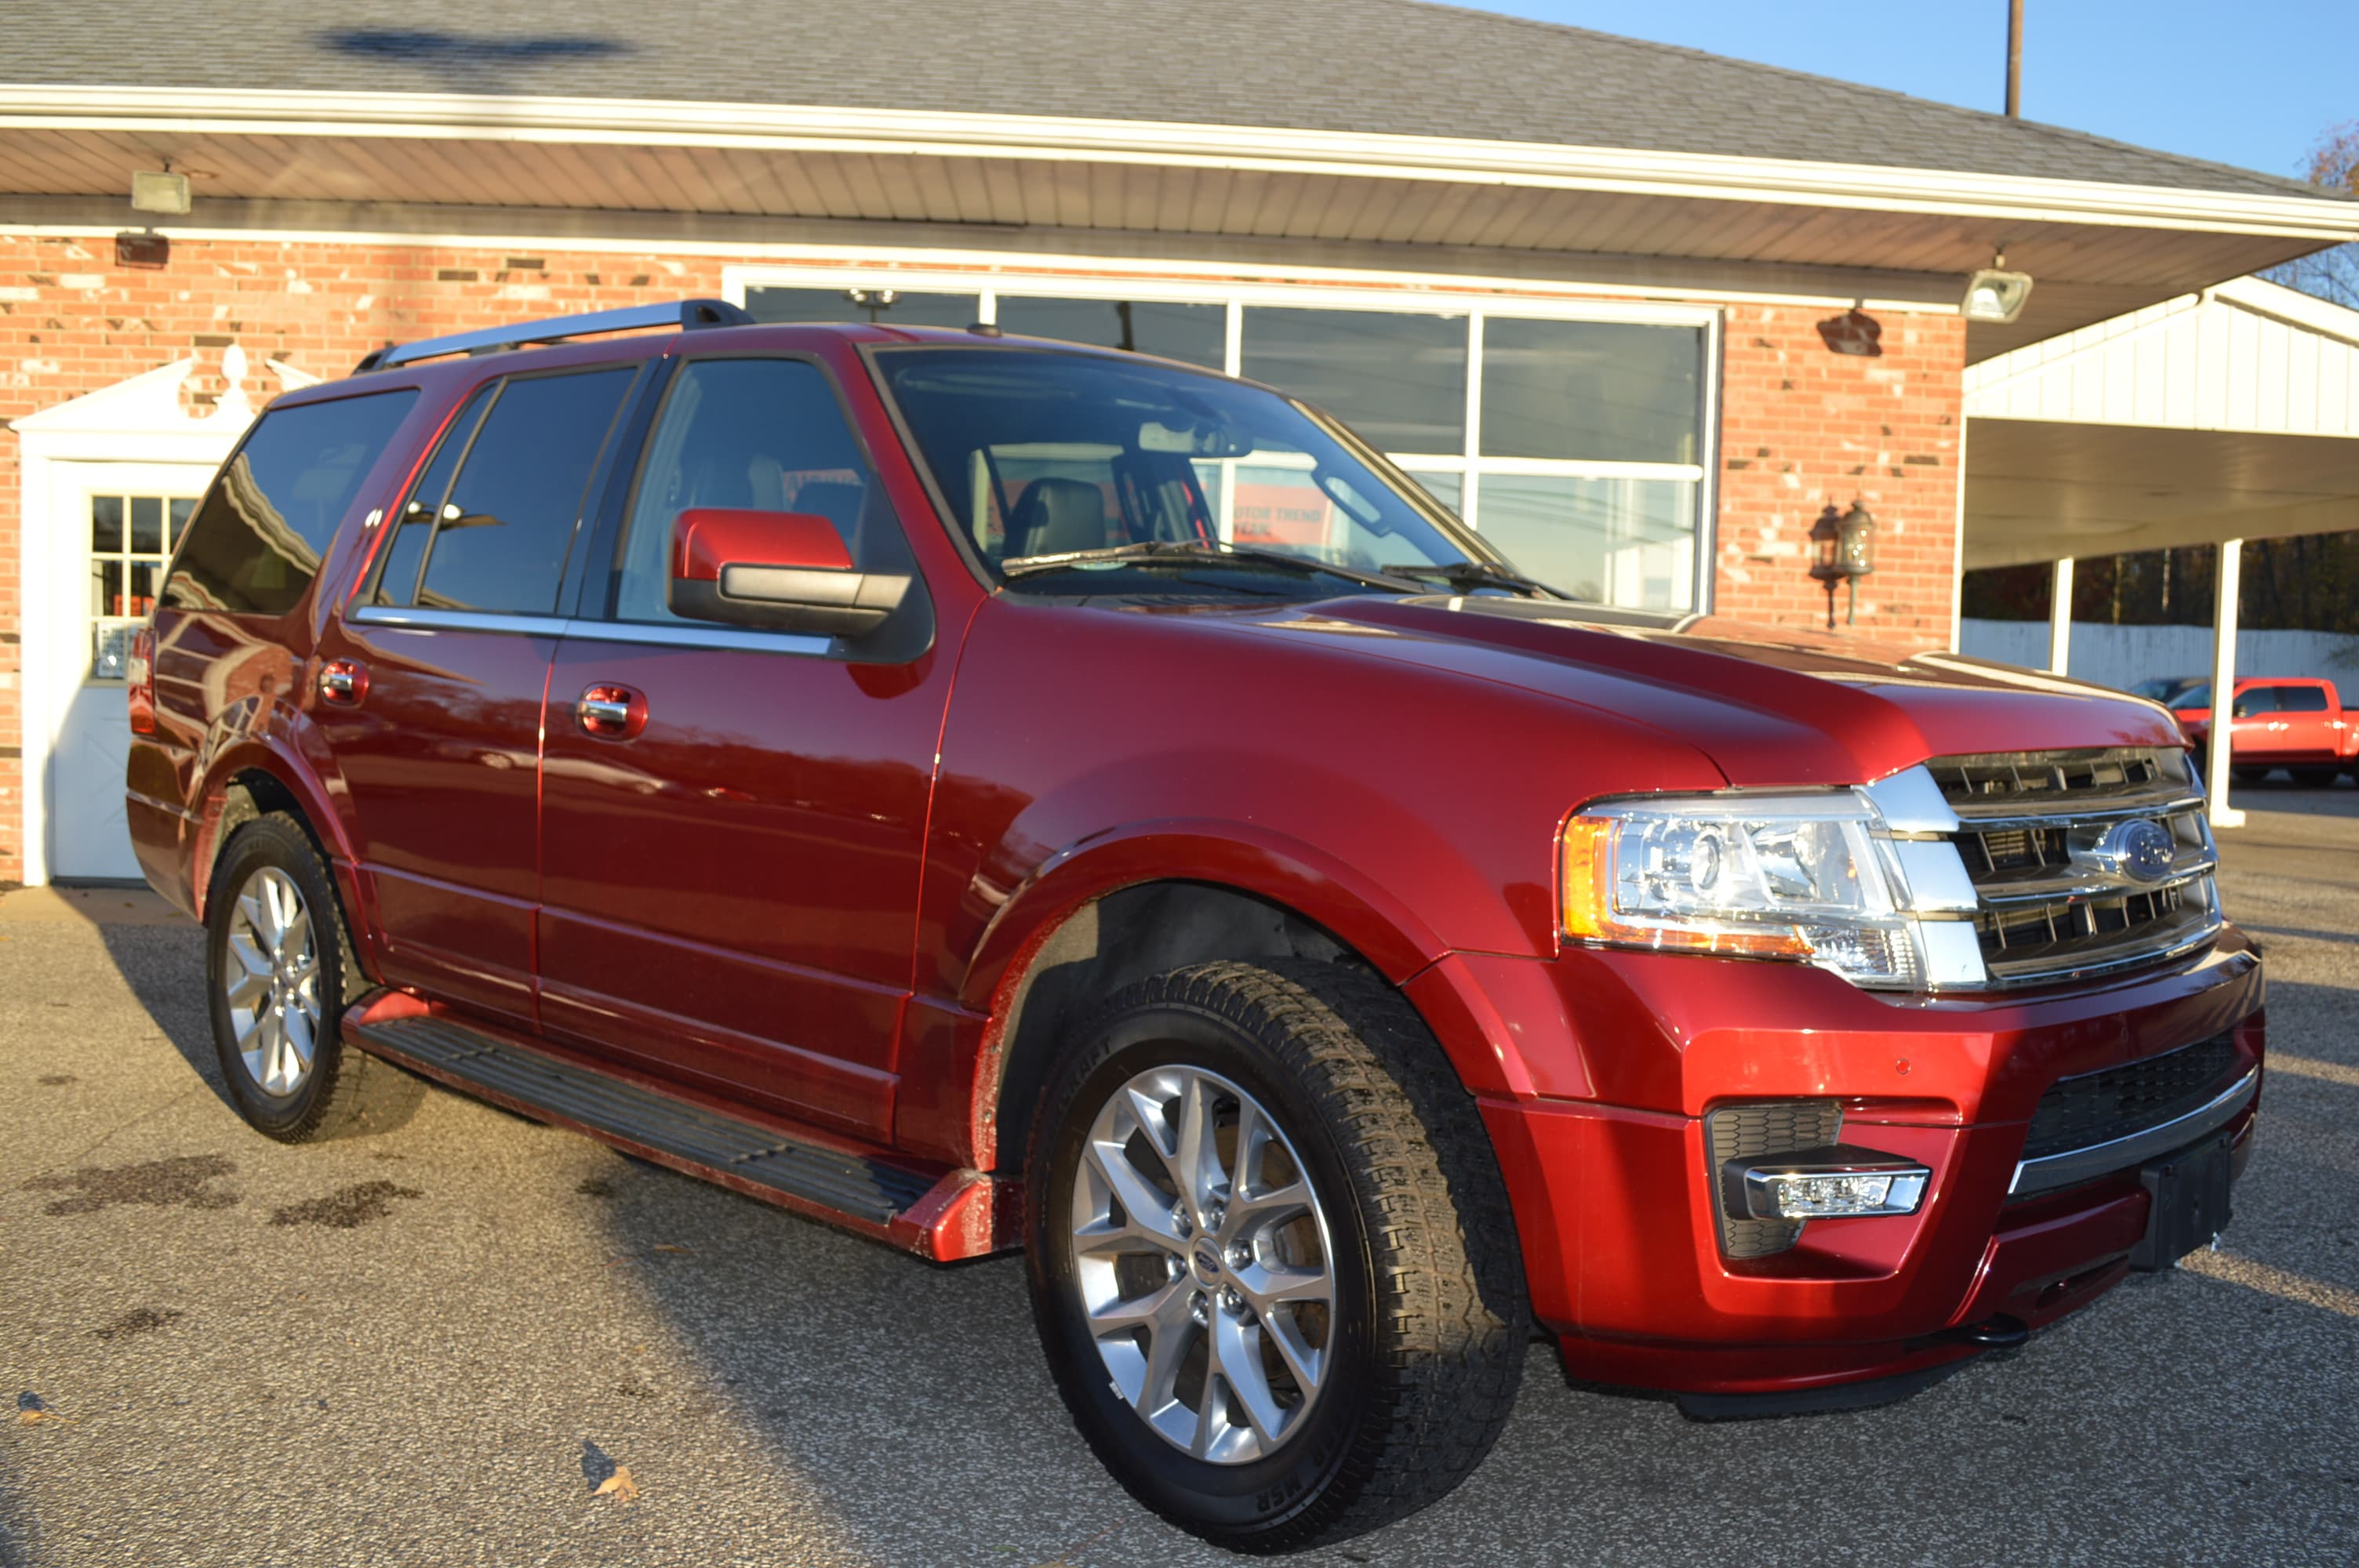 Featured used  2016 Ford Expedition Limited 300A  8 Passenger 4x4 / 4WD 3.5L V6 EcoBoost  SUV for sale in Edinboro, PA